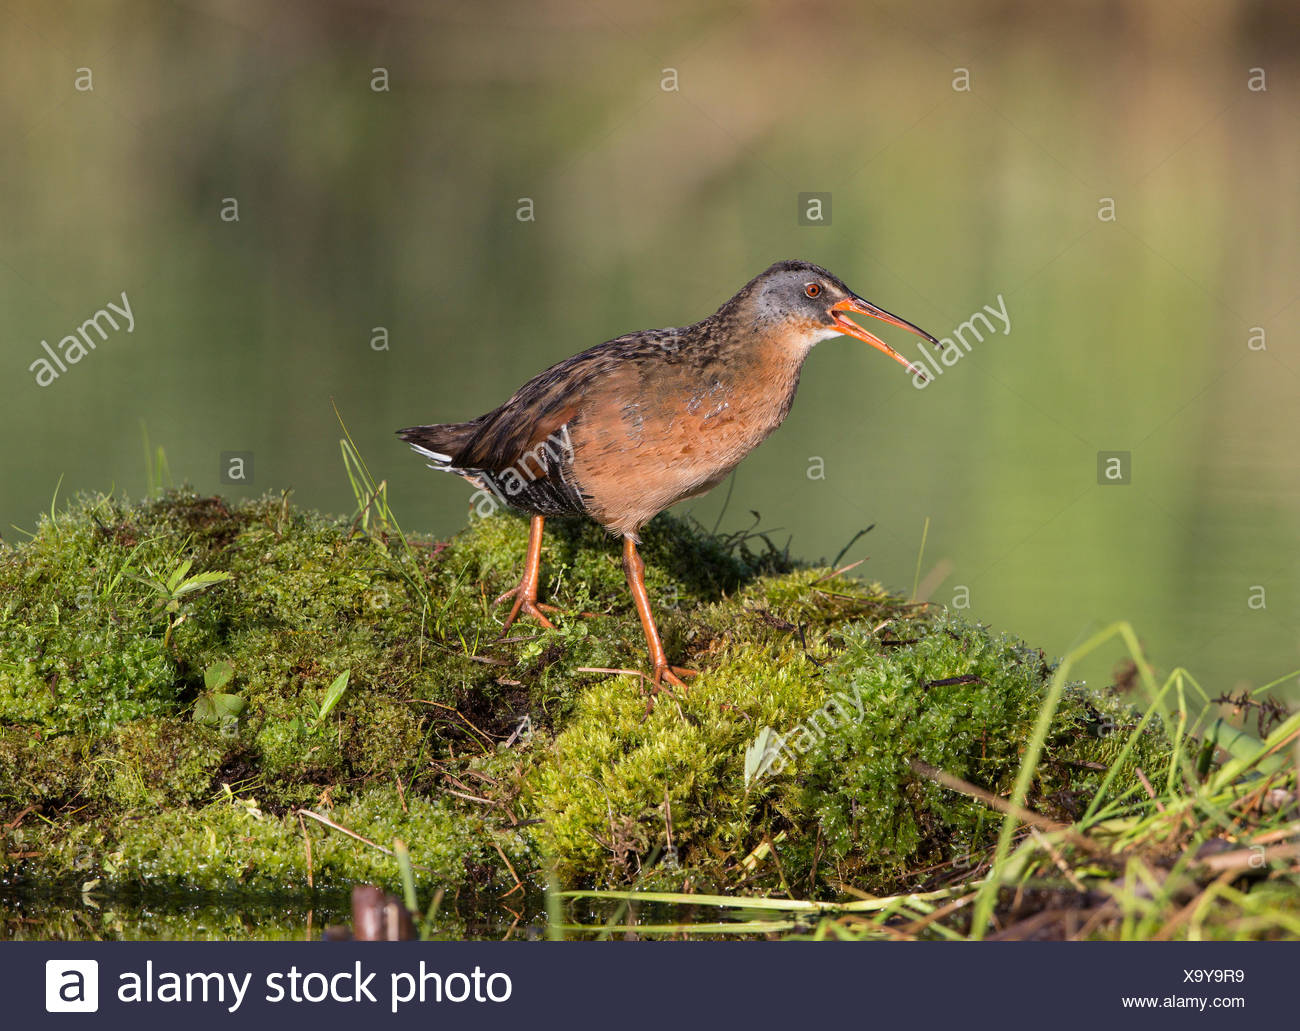 Virginia rail (Rallus limicola), male calling, Lac Le Jeune, British Columbia. Bird attracted to perch setup with recorded call. - Stock Image